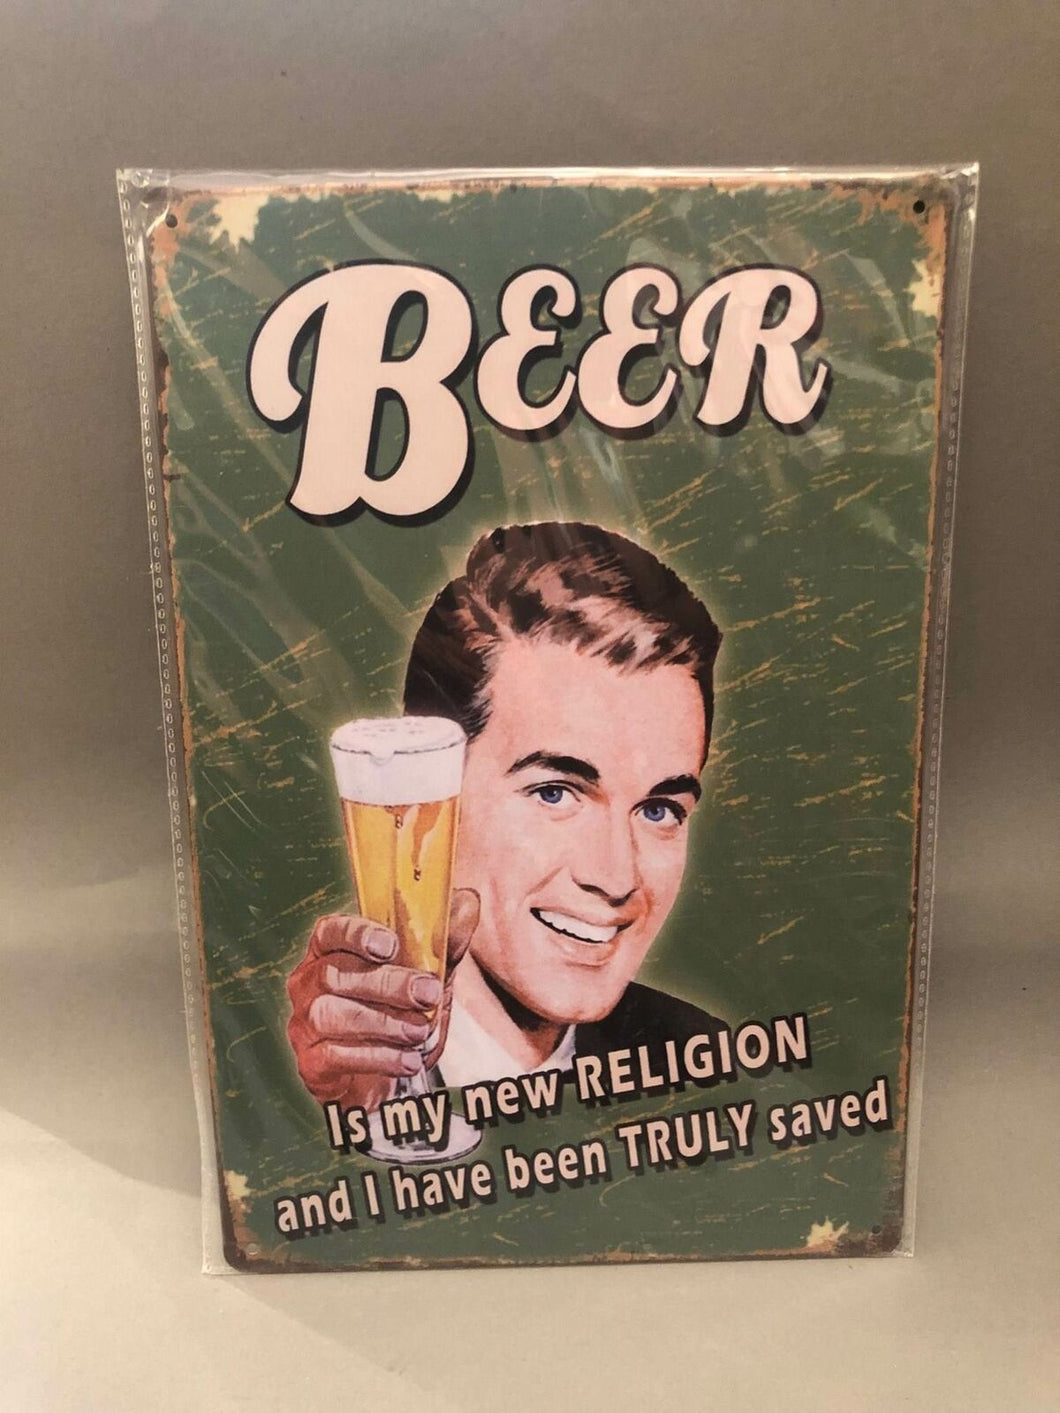 Nostalgie Blech Schild Beer Bier is my new religion 20 x 30 42006